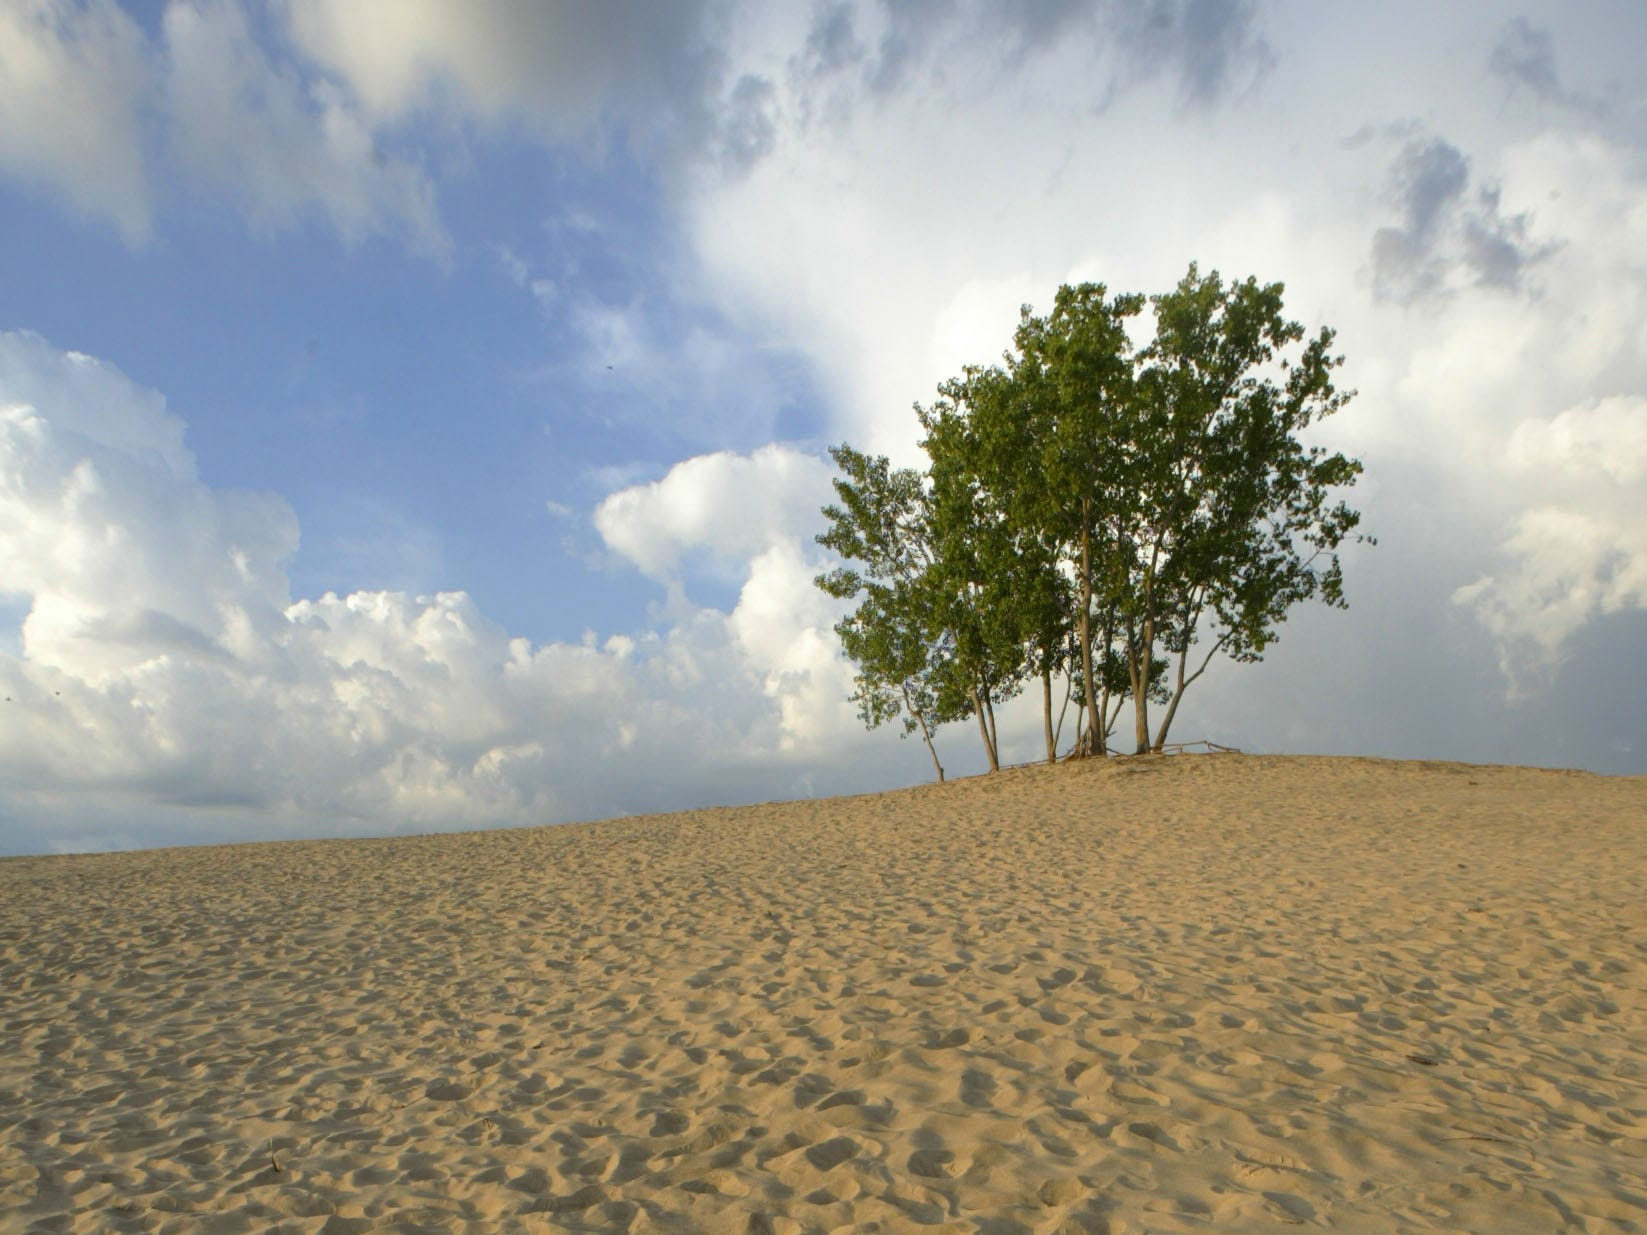 At the Indiana Dunes National Lakeshore, Mount Baldy, a 125-foot sand dune, is a popular stop on the way to Lake Michigan.